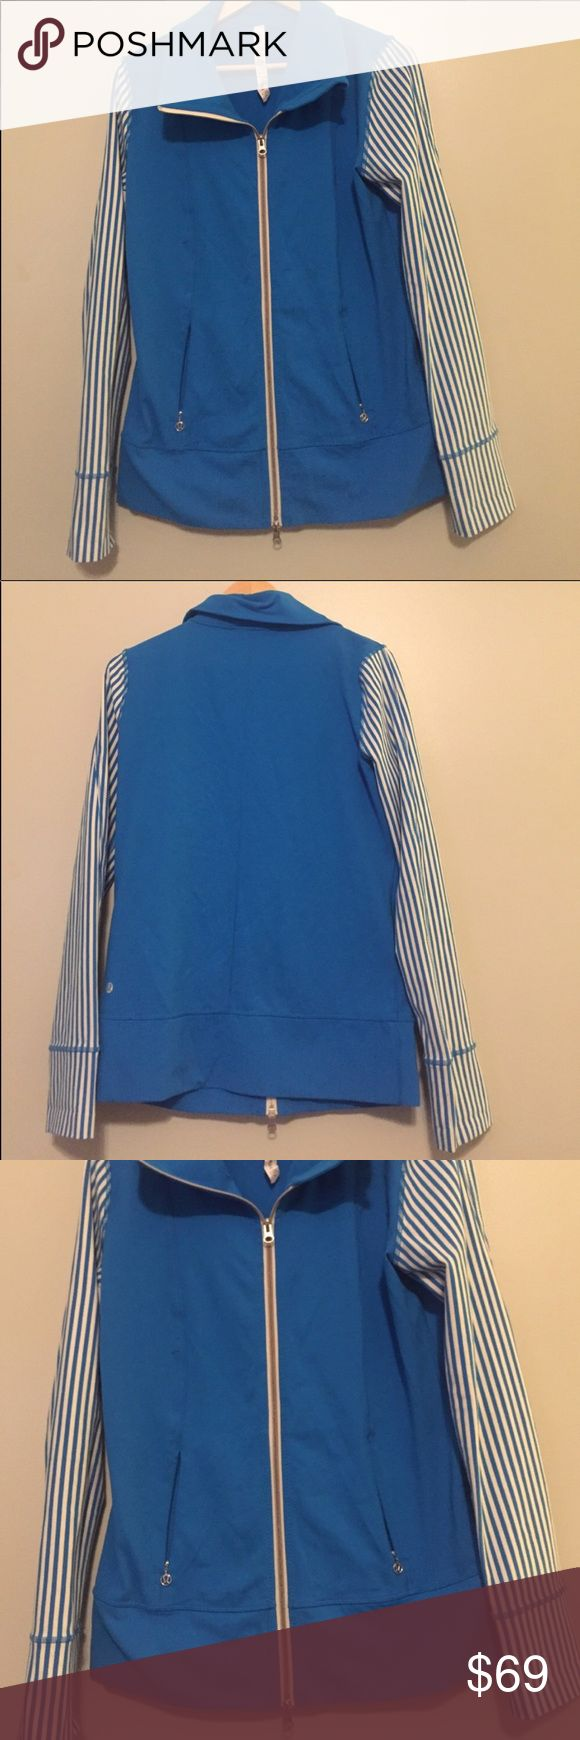 Lululemon Zip Up Jacket  size 10 Lululemon Zip Up Jacket  size 10-blue with blue and white stripes on sleeve-pit to pit is approx 18 inches flat, shoulder to hem is approx 28 inches lululemon athletica Jackets & Coats